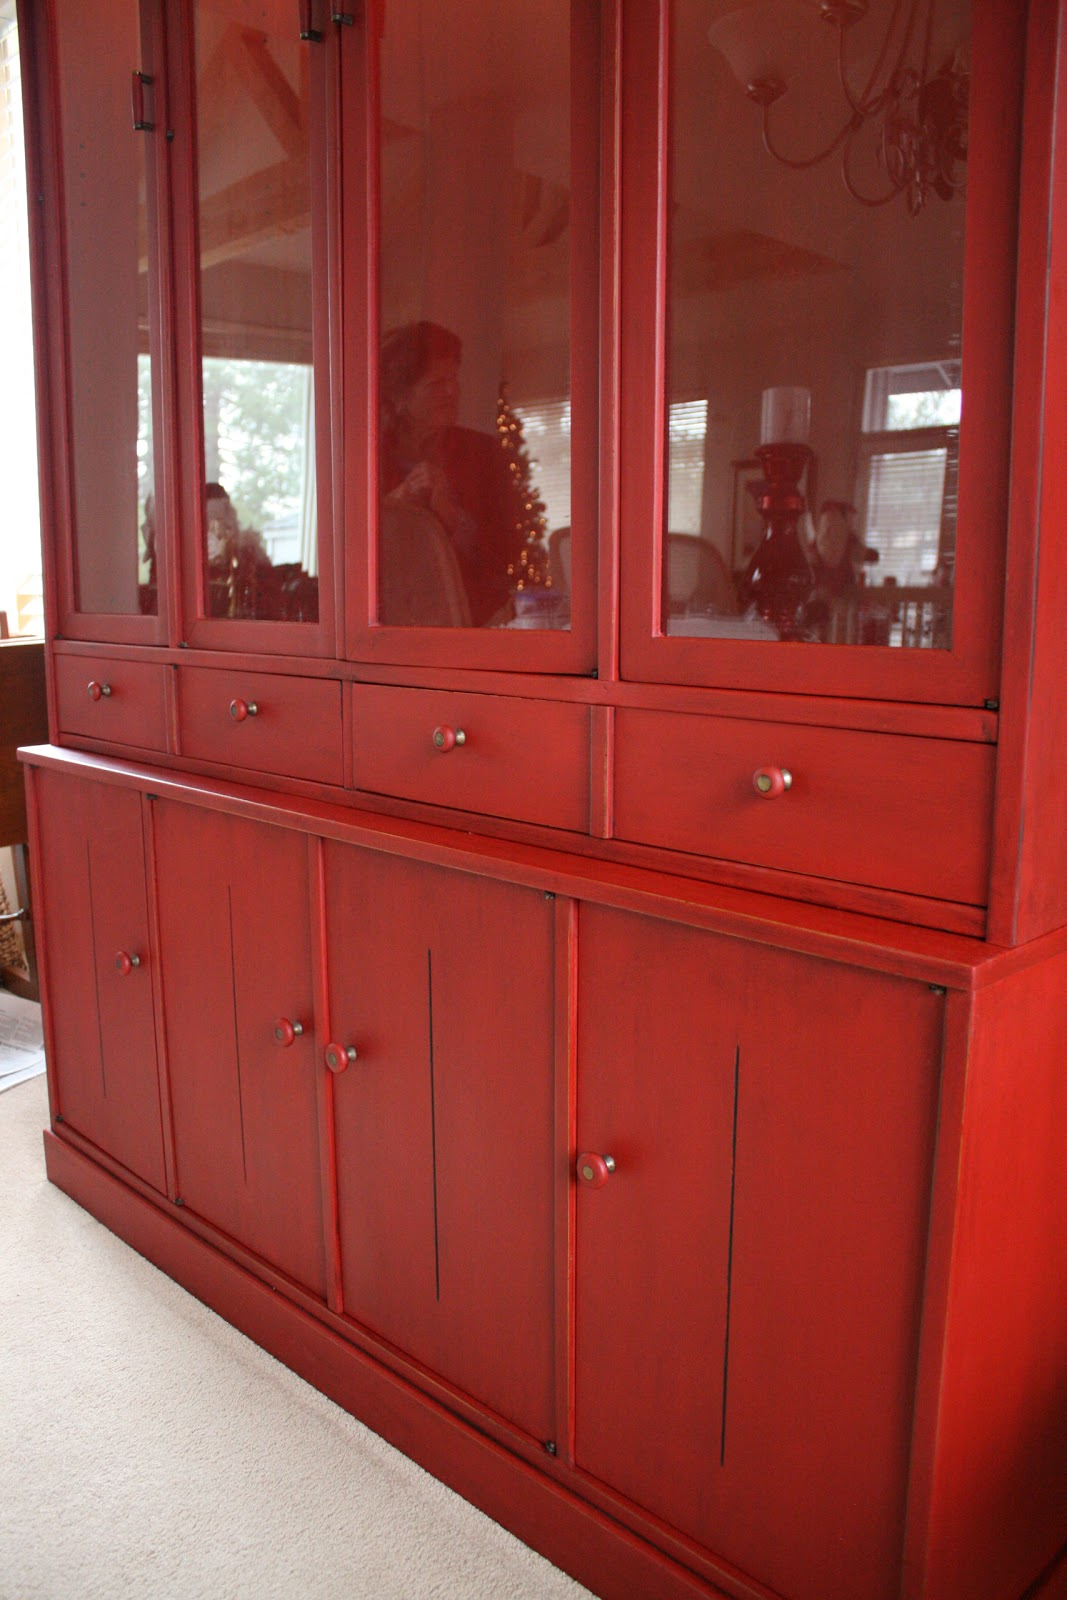 Reloved Rubbish: Red China Cabinet